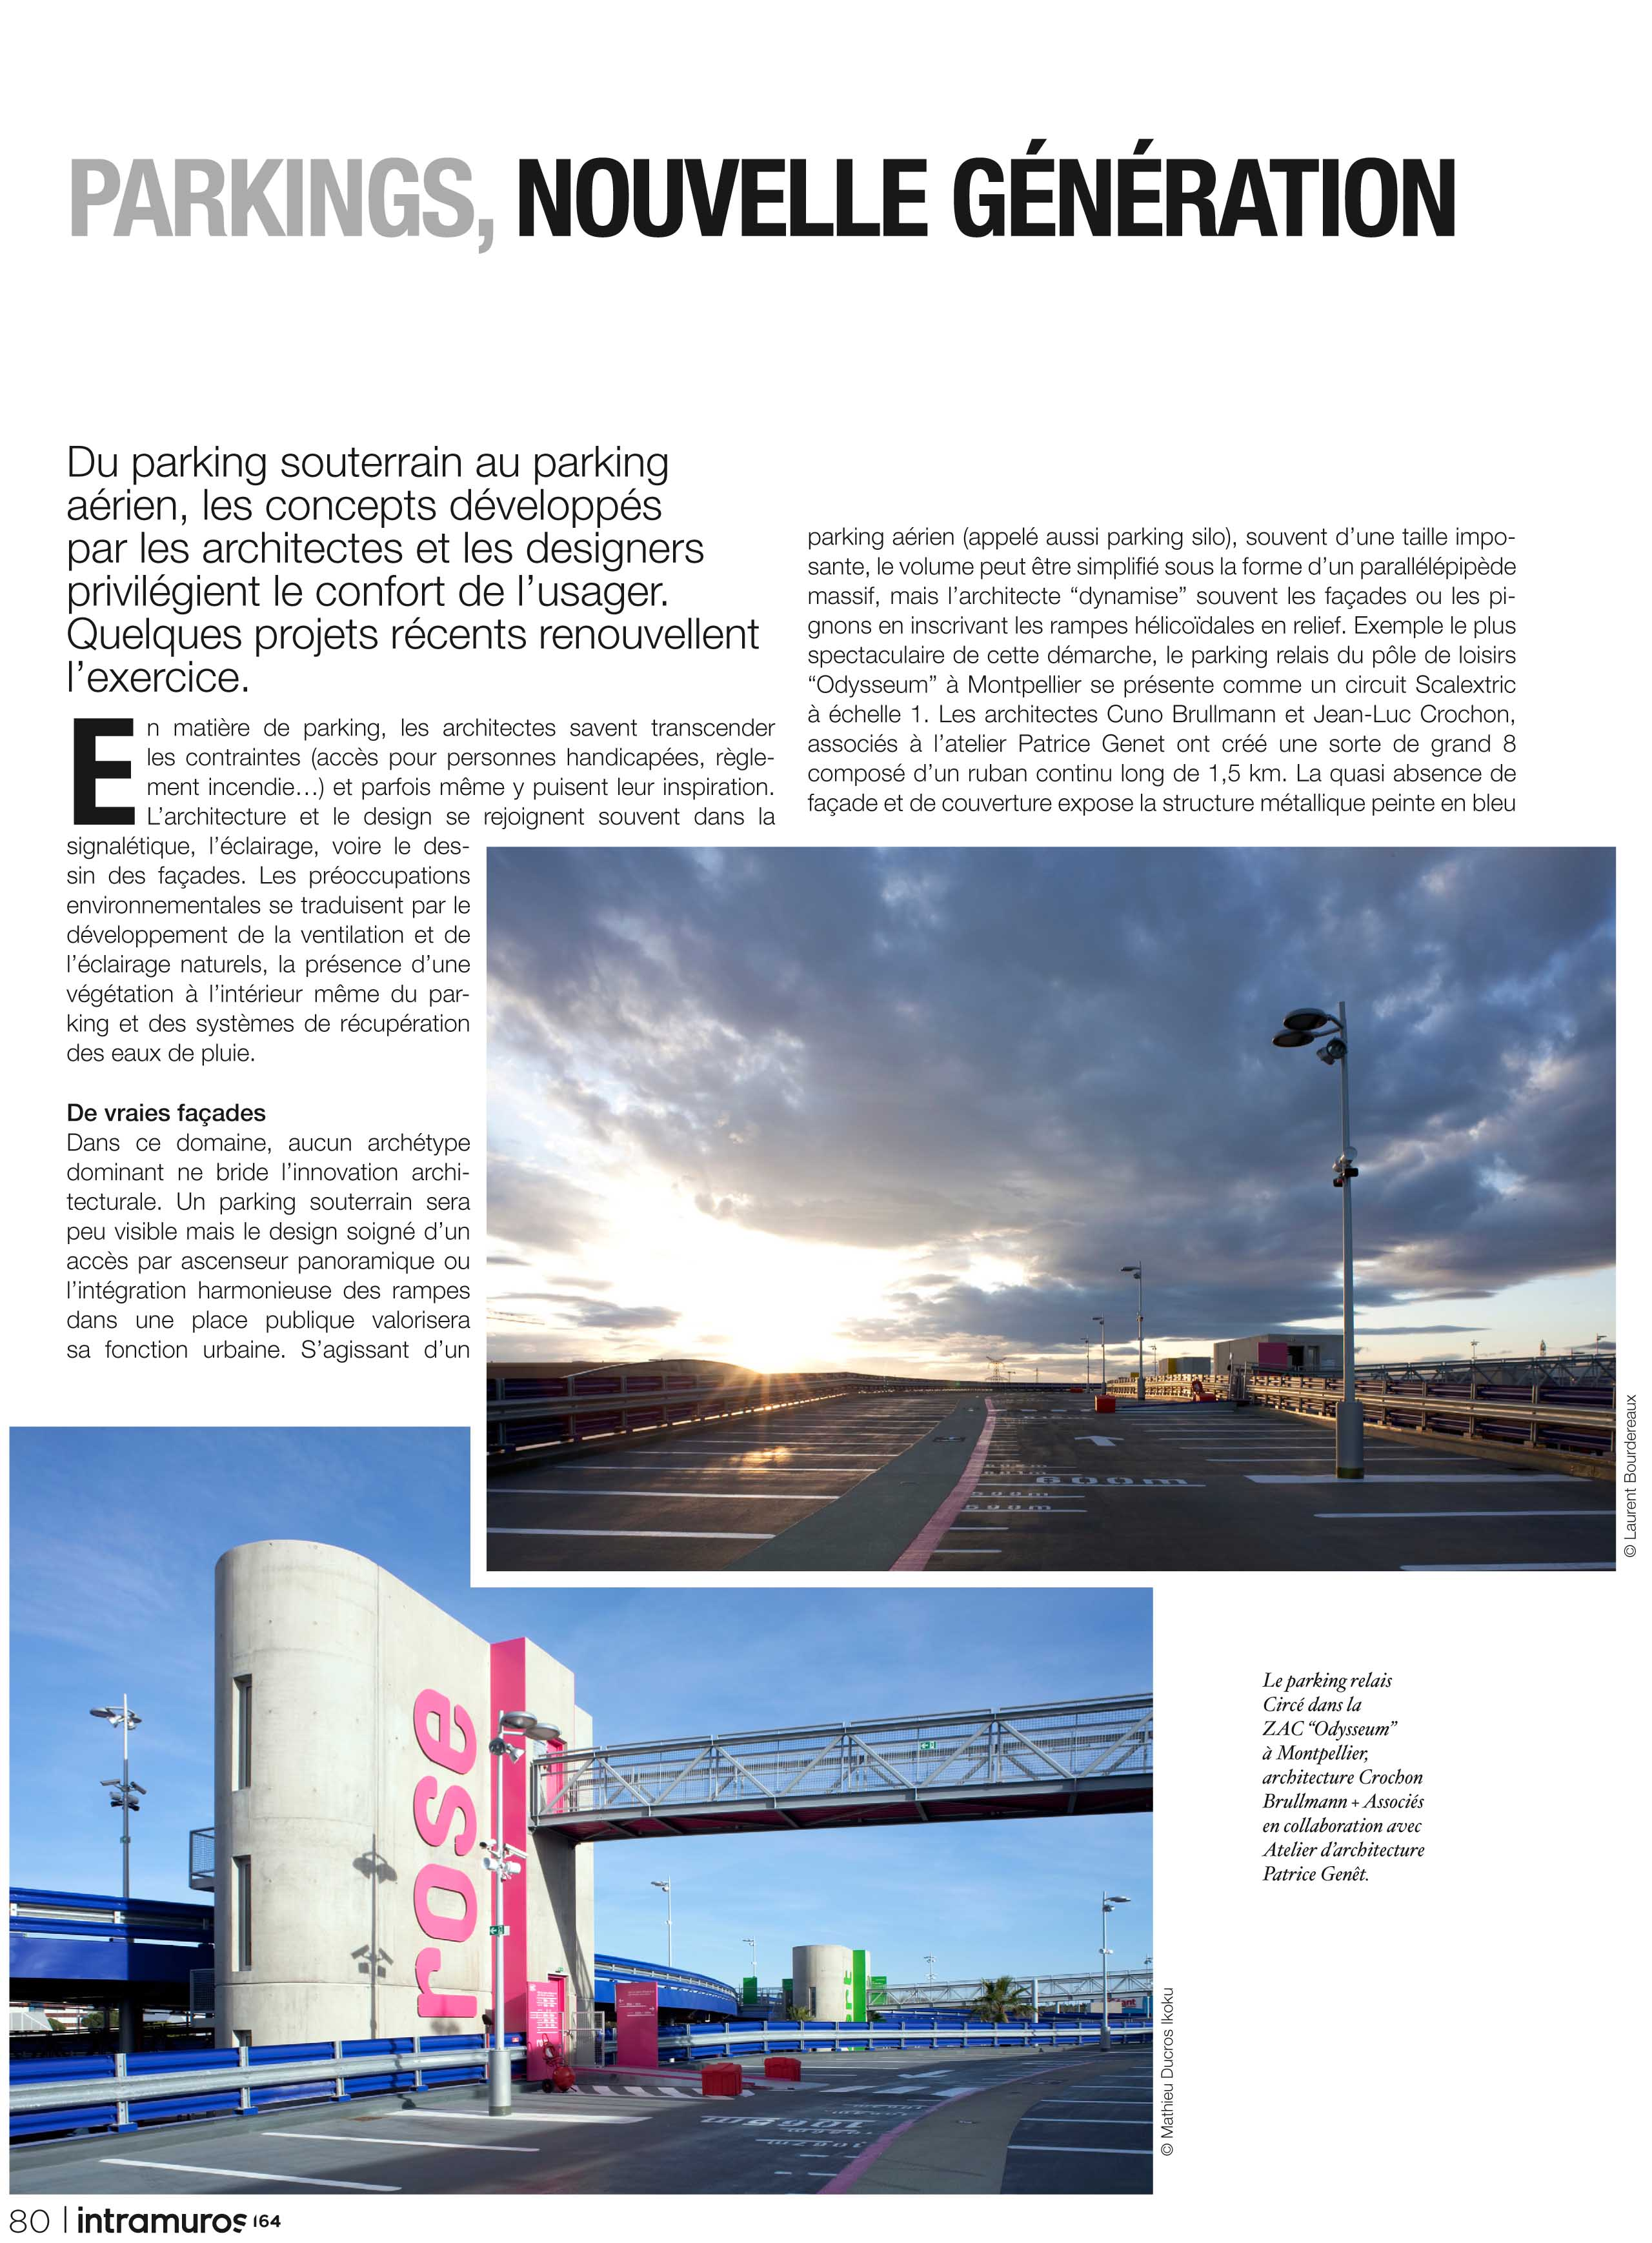 Parking Odysseum Montpellier Articles Cabinet D Architecture Patrice Genet Montpellier